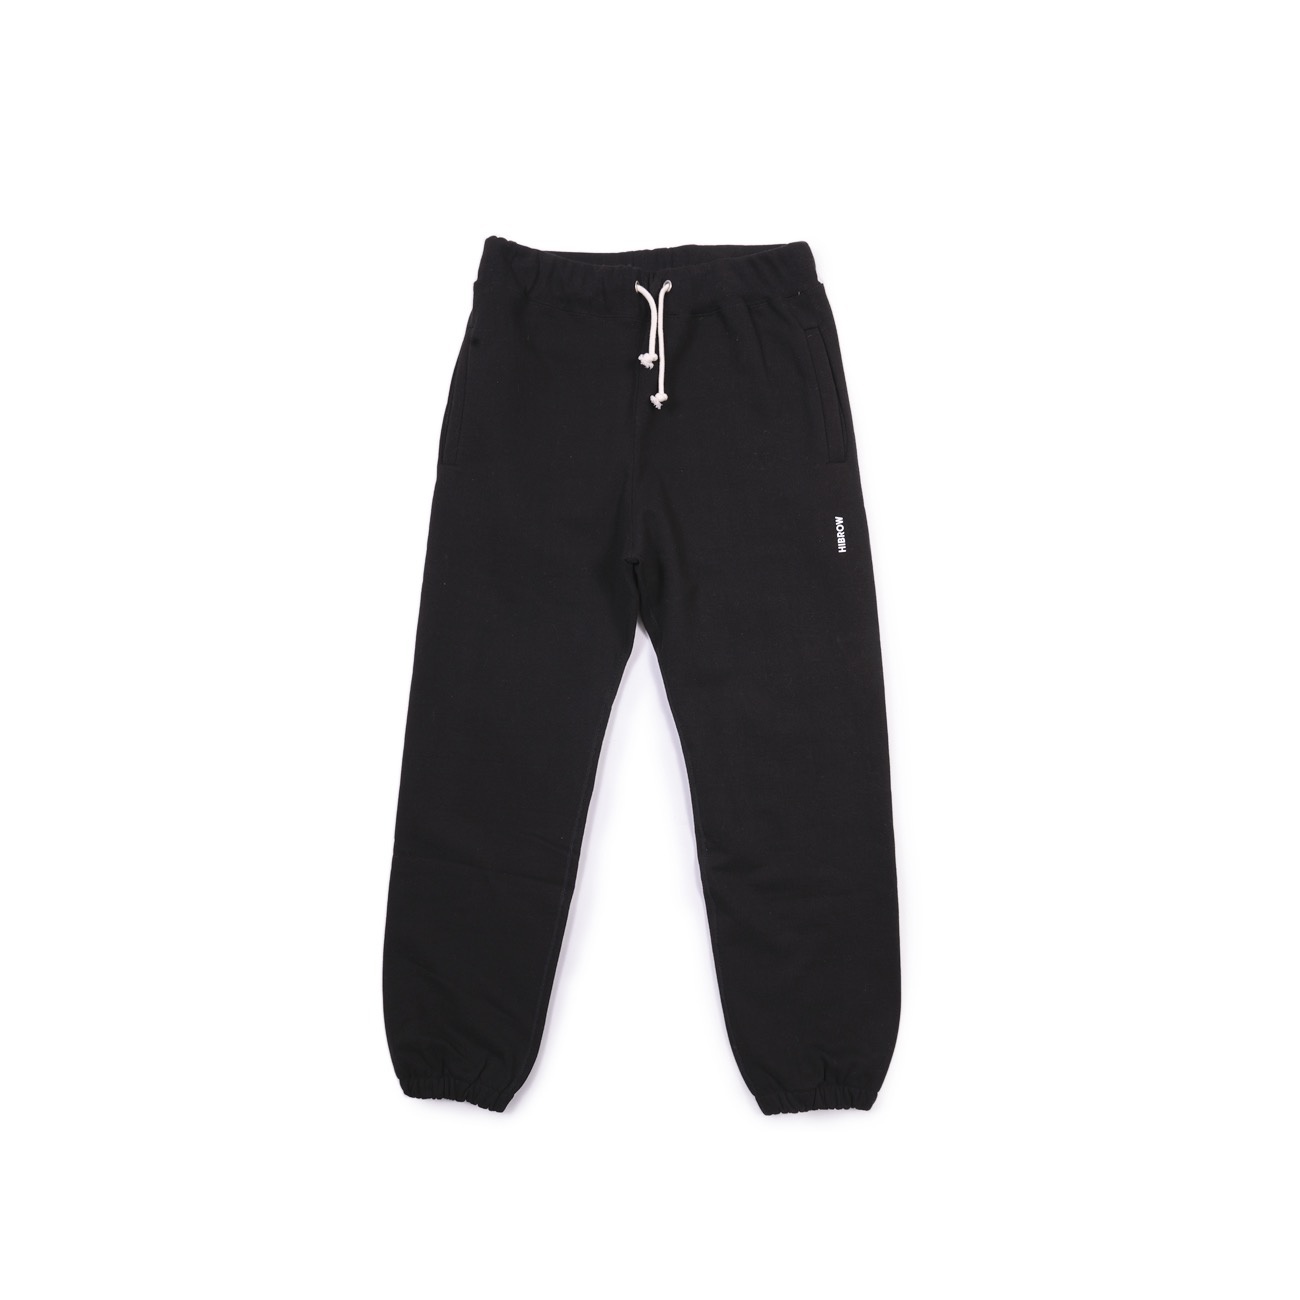 M.Nii x HIBROW Sweat Pants